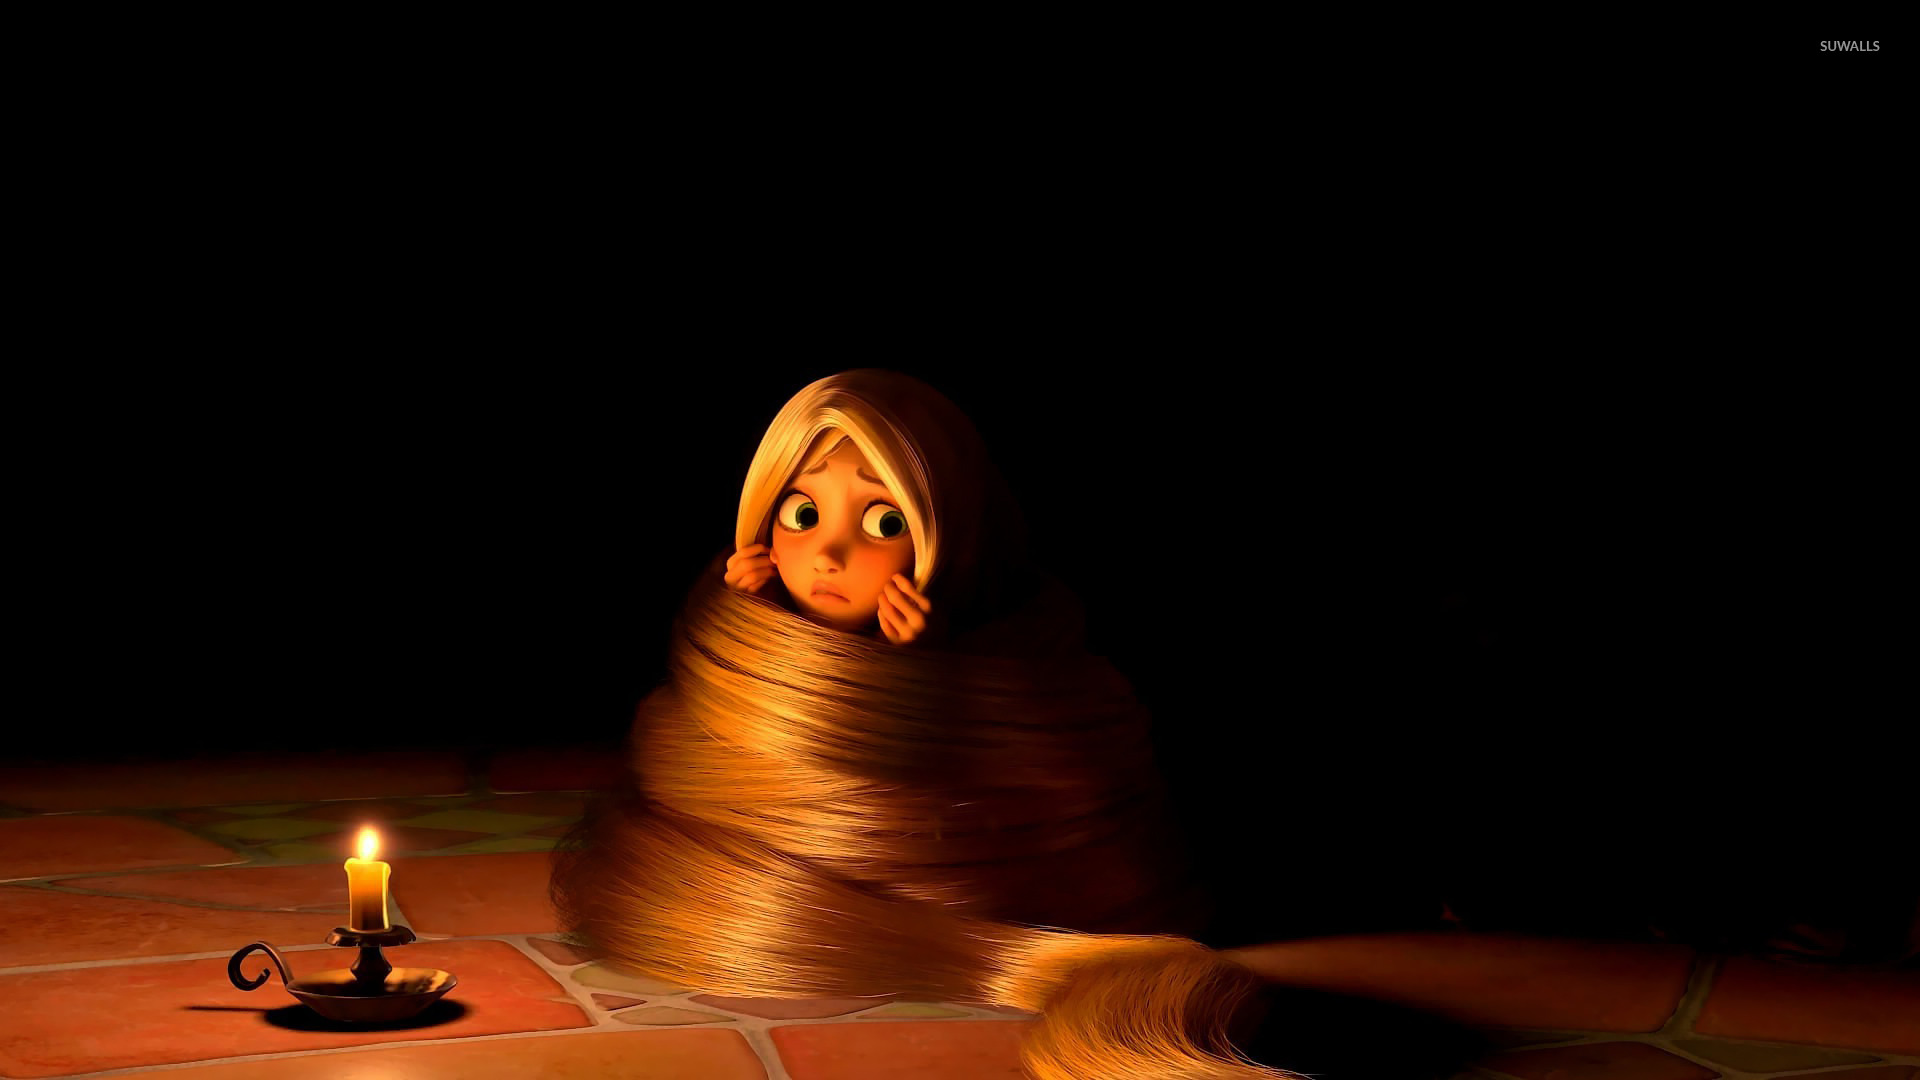 rapunzel hd wallpapers